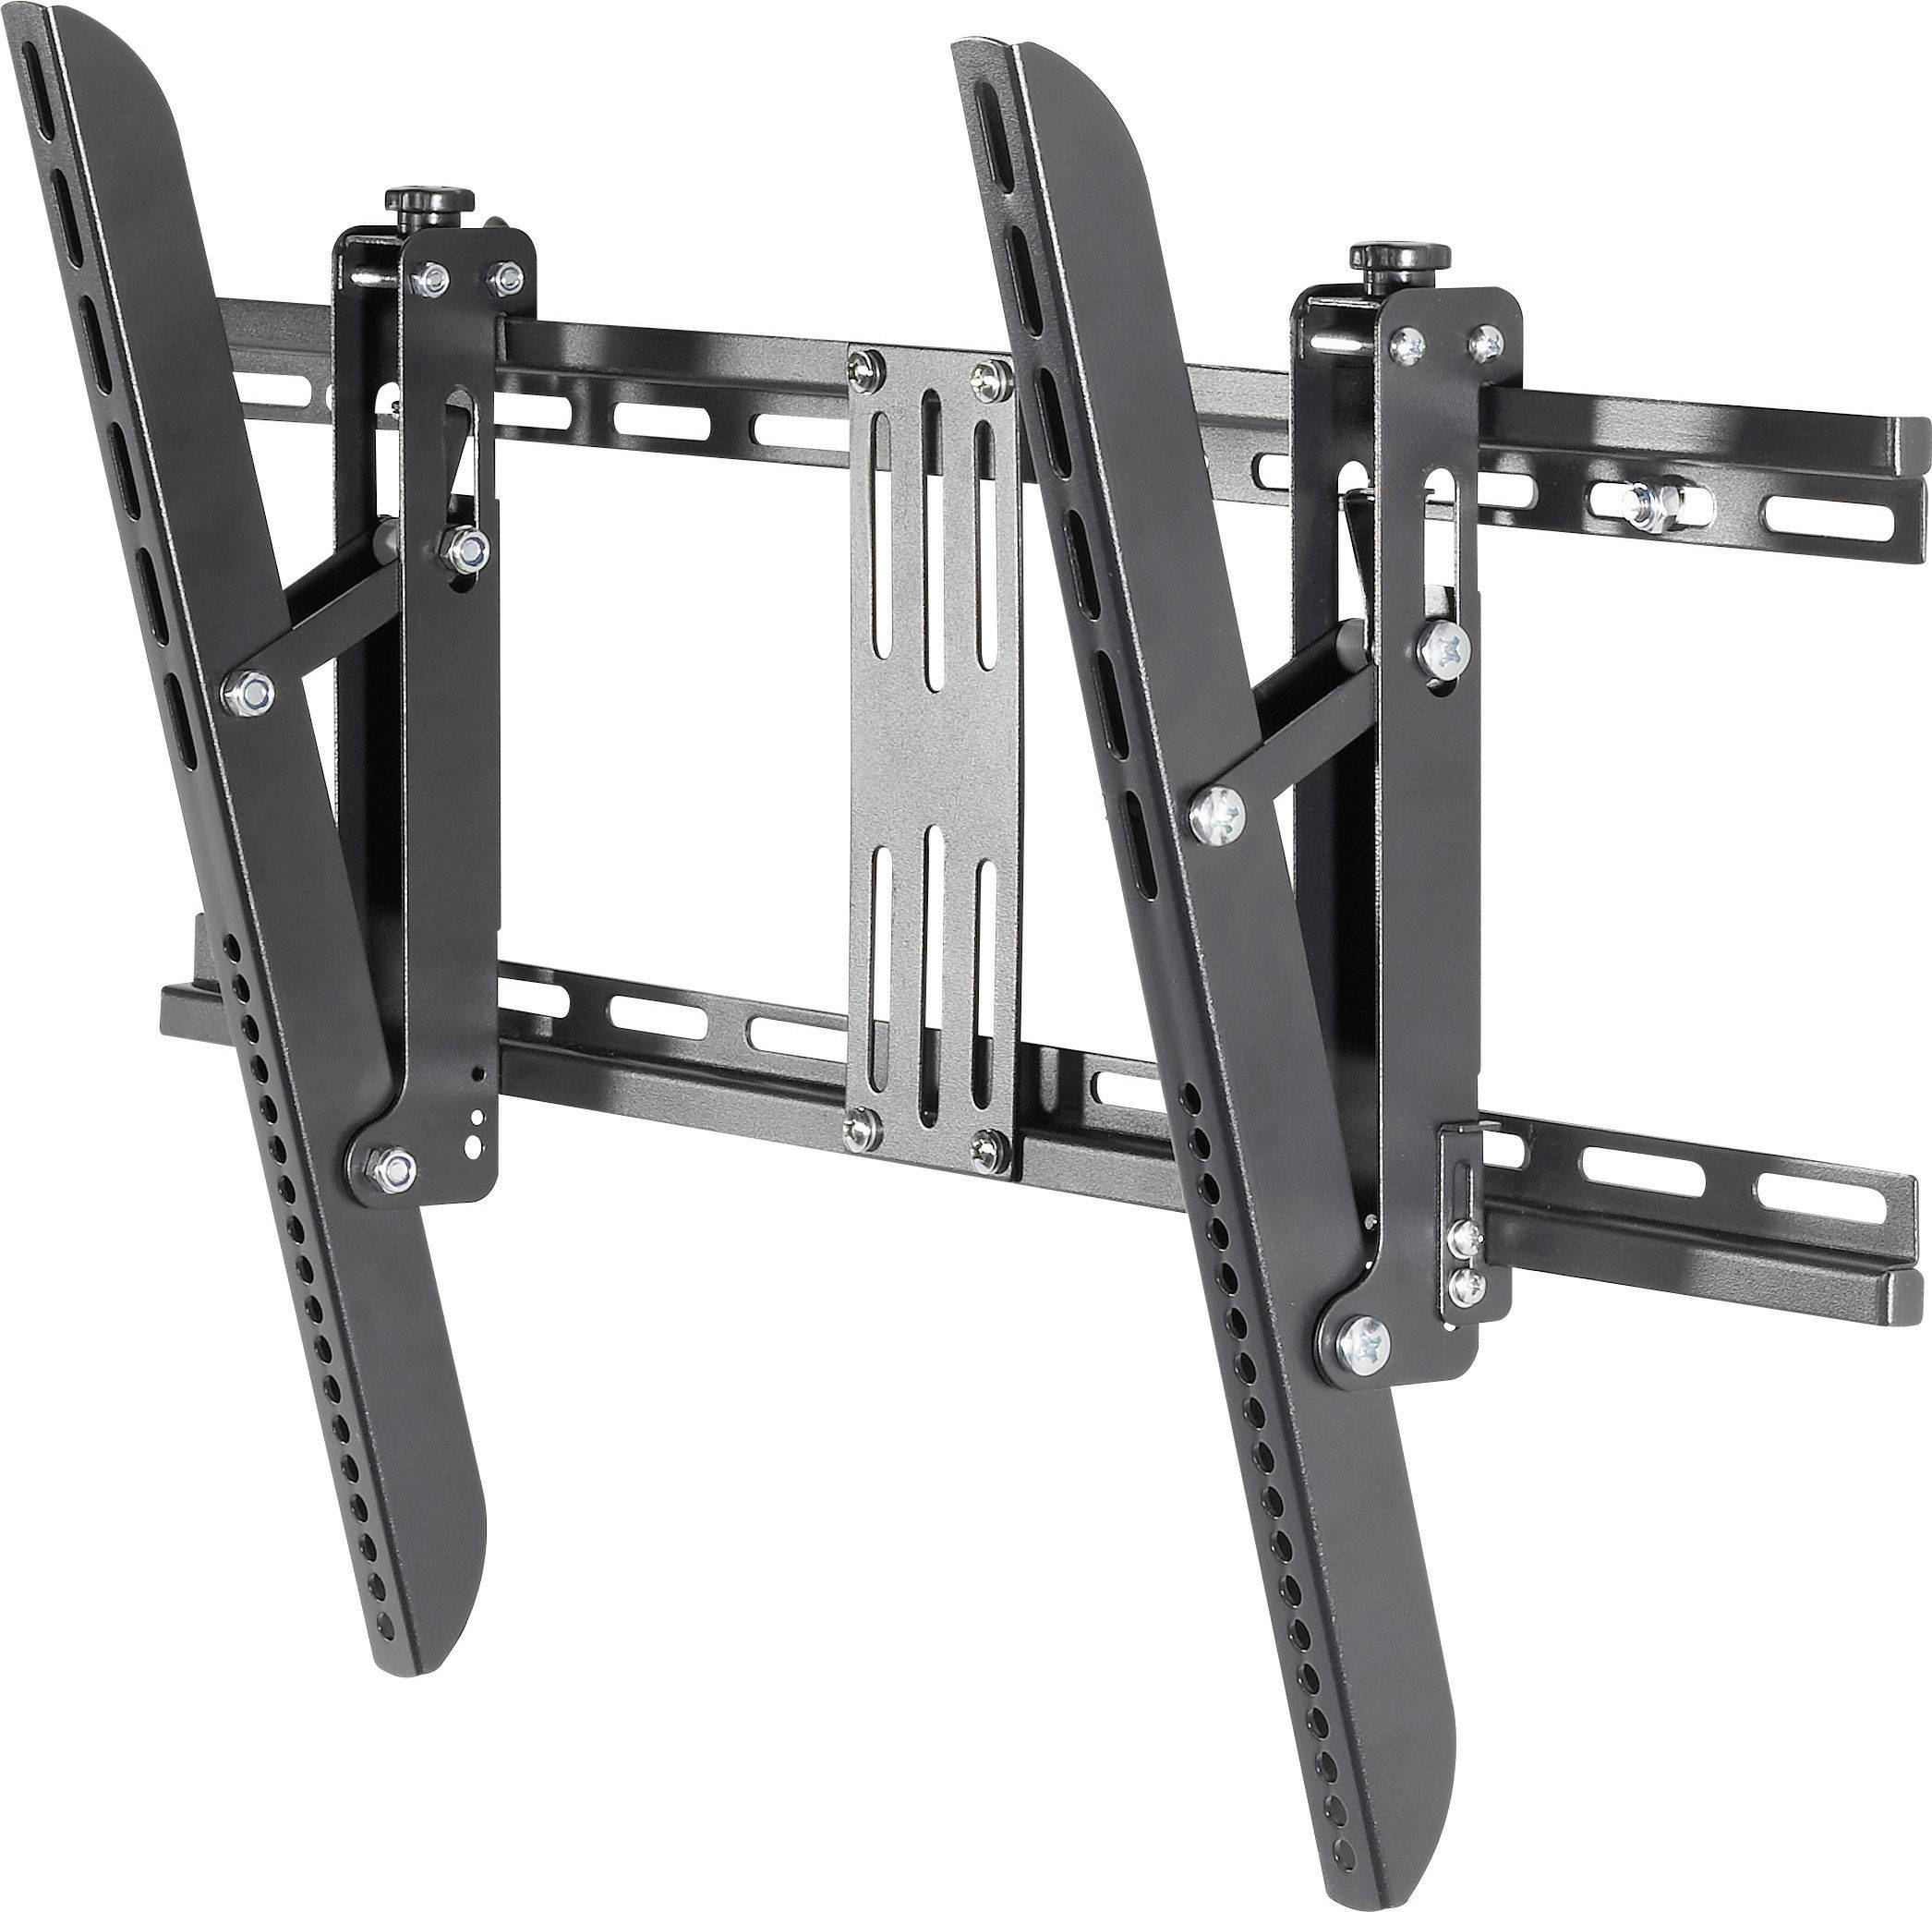 SpeaKa Professional Wall Tilt TV Wandhalterung 81,3 cm (32